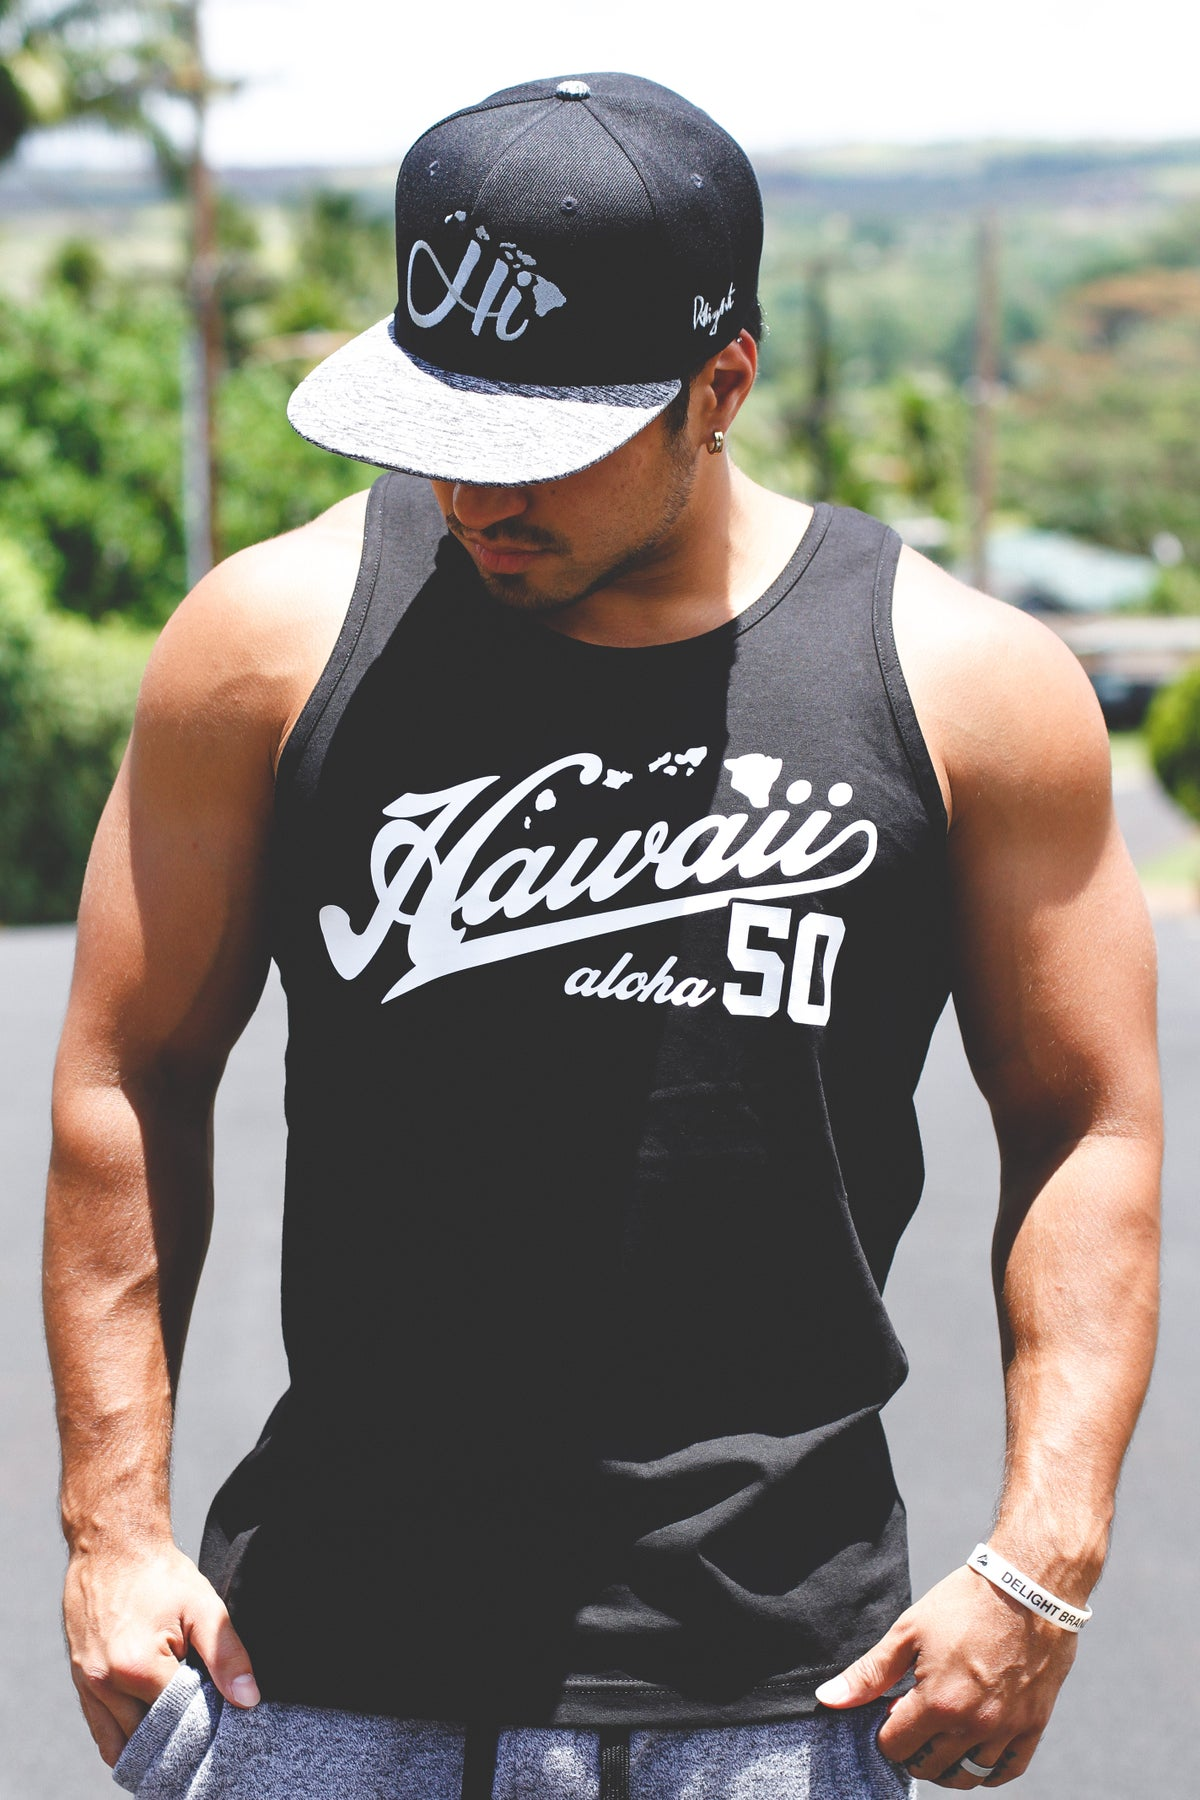 Hawaii Aloha 50 Tank Top & T-shirt (Black)